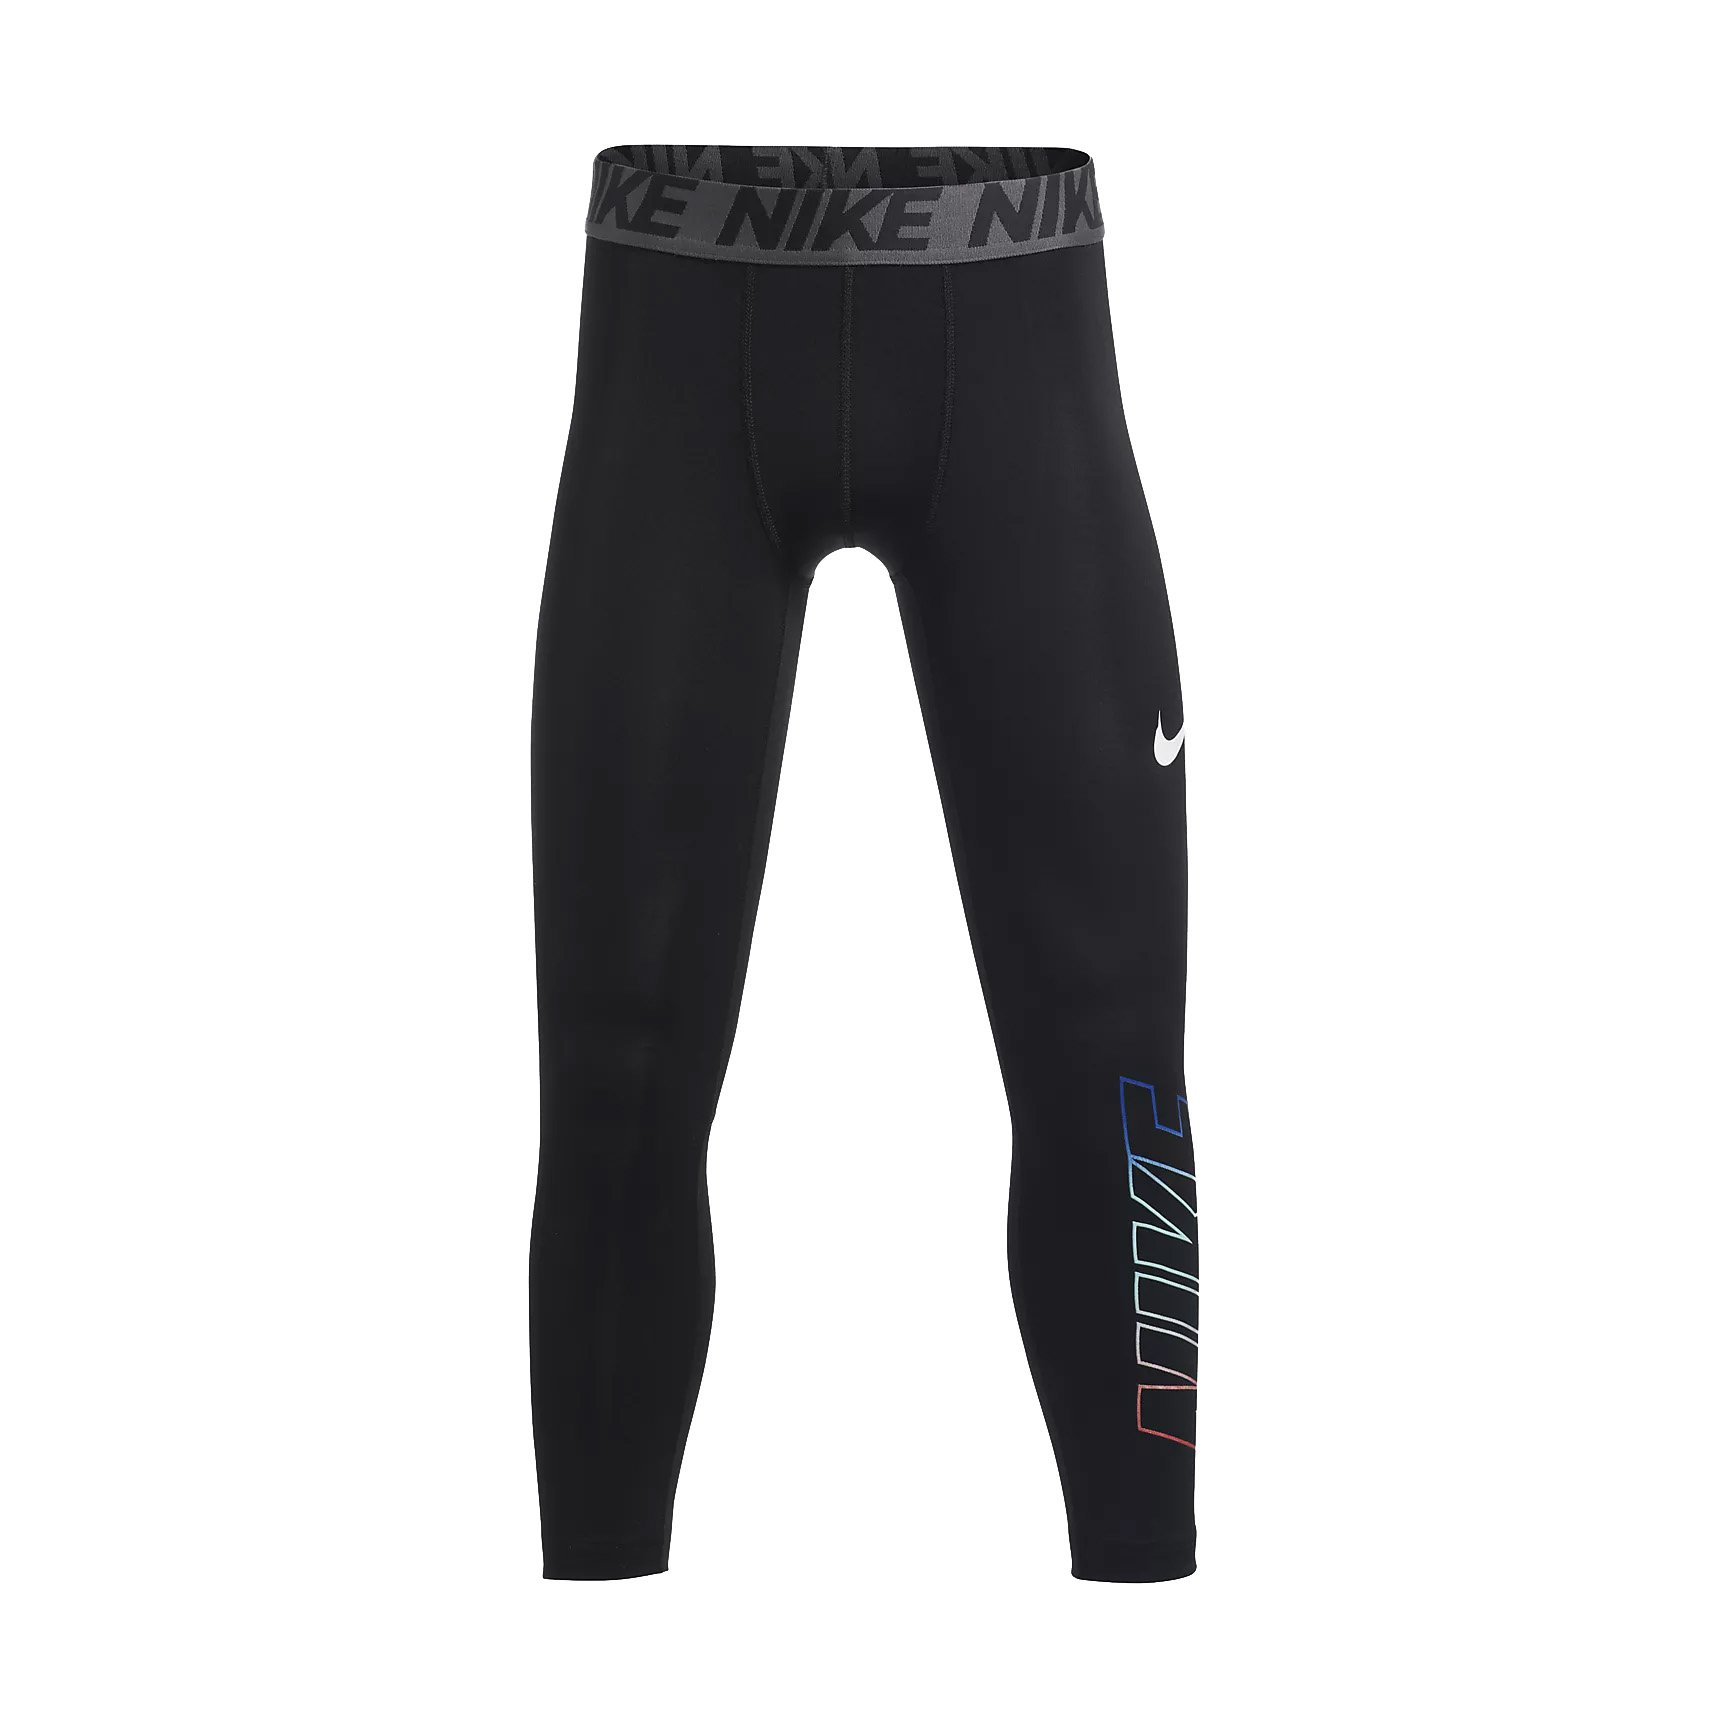 NIKE Boy`s Base Layer 3/4 Training Tights (Black (856121-010)/Anthracite/Black, Small) by NIKE